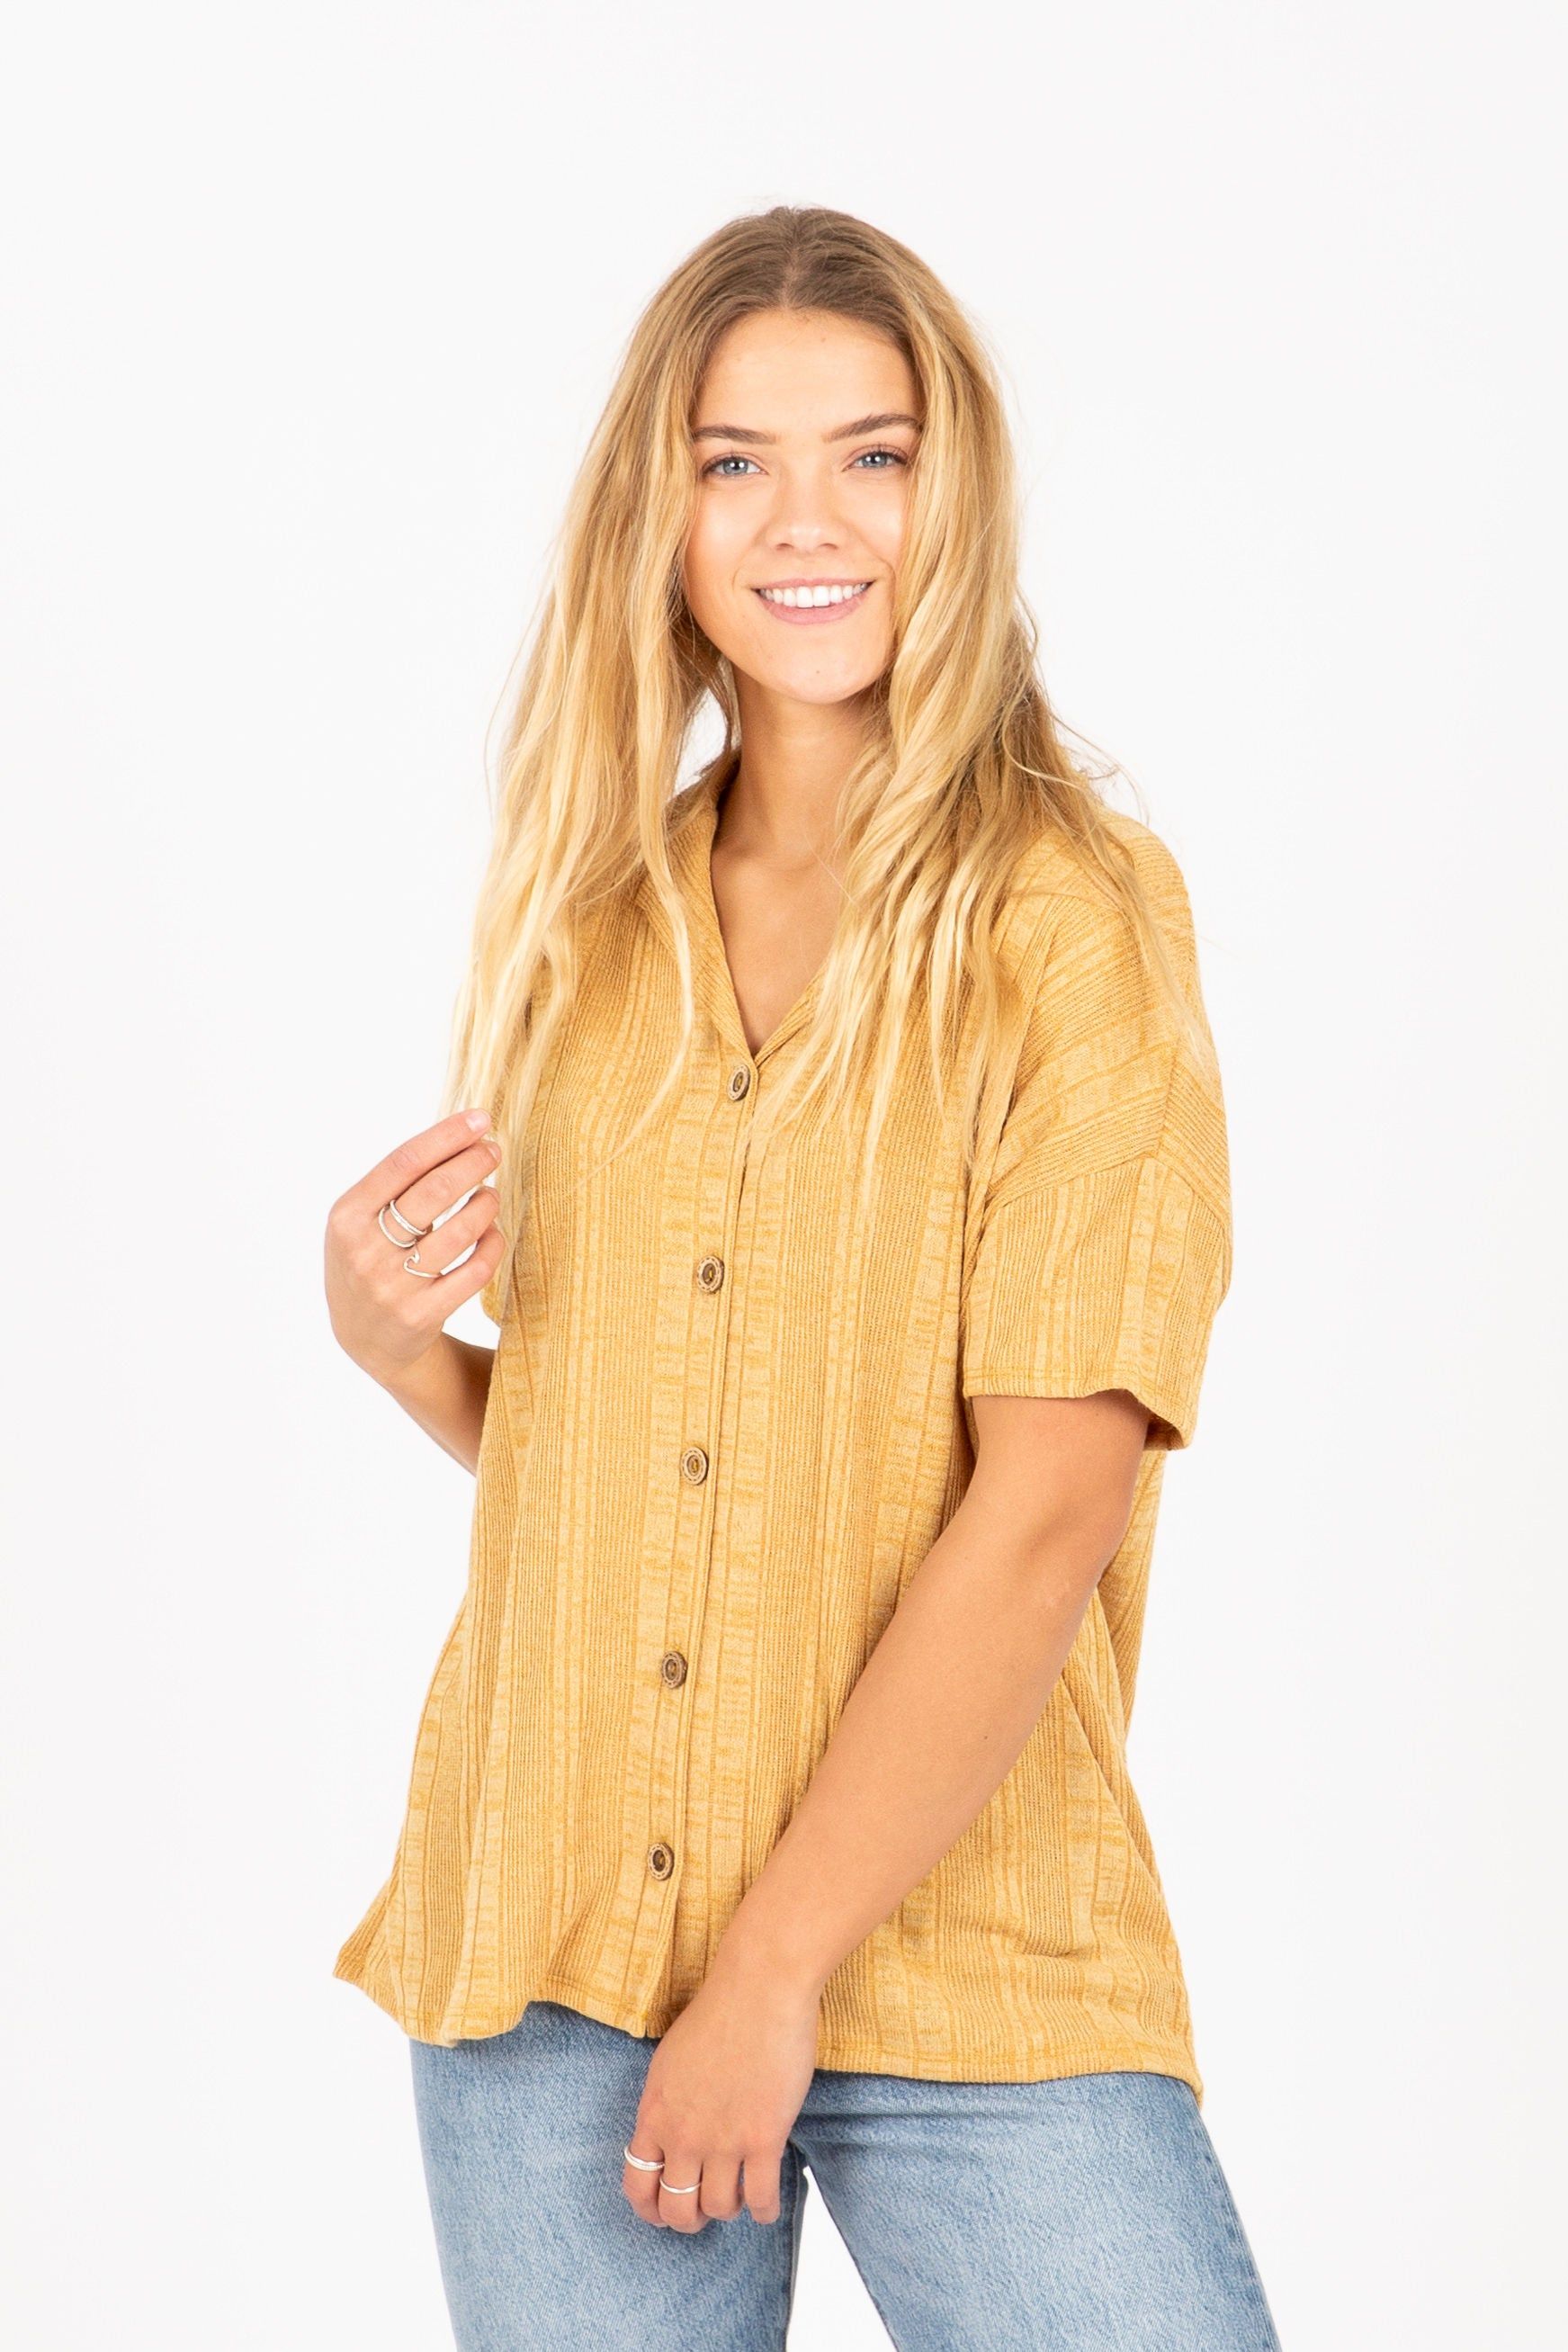 The Maiden Ribbed Button Up Blouse in Camel